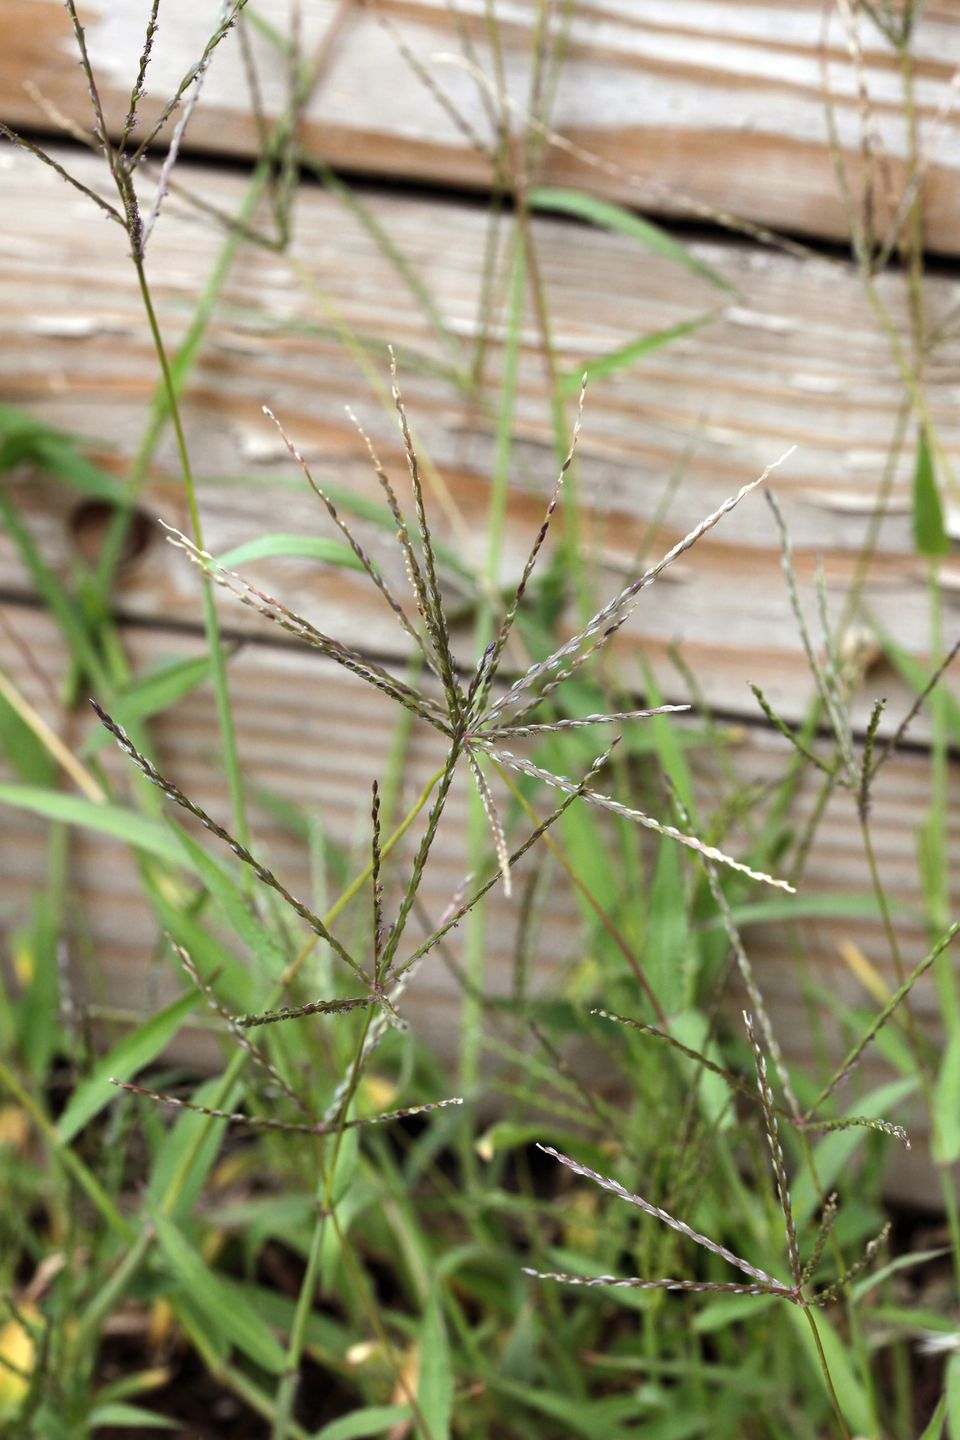 photo gallery of common types of weeds